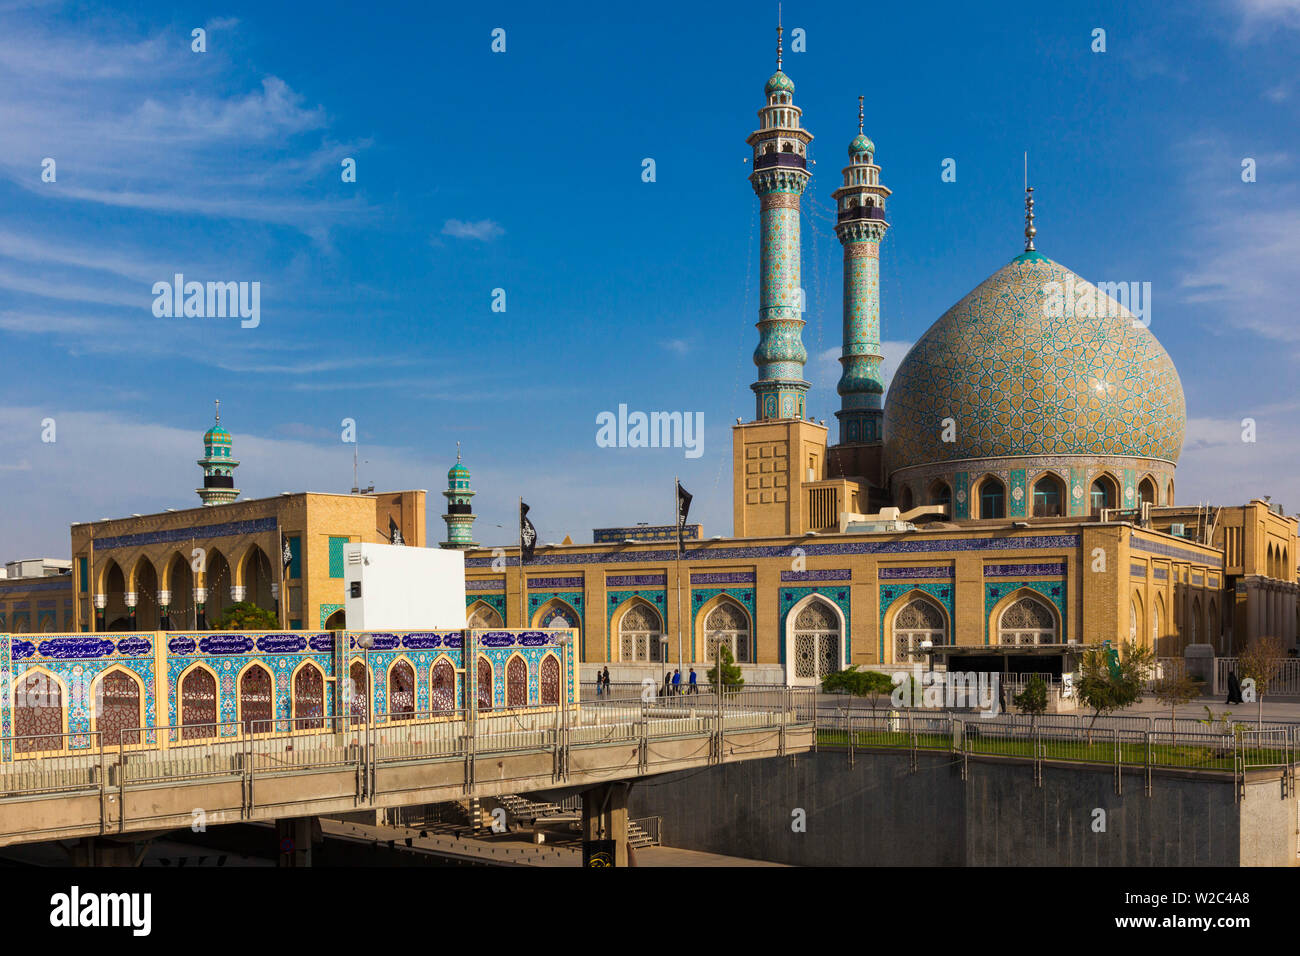 Iran, Central Iran, Qom, second holiest city in Iran after Mashad,  Hazrat-e Masumeh, Holy Shrine, burial place of Imam Reza's sister Fatemeh in the 9th century AD, exterior Stock Photo